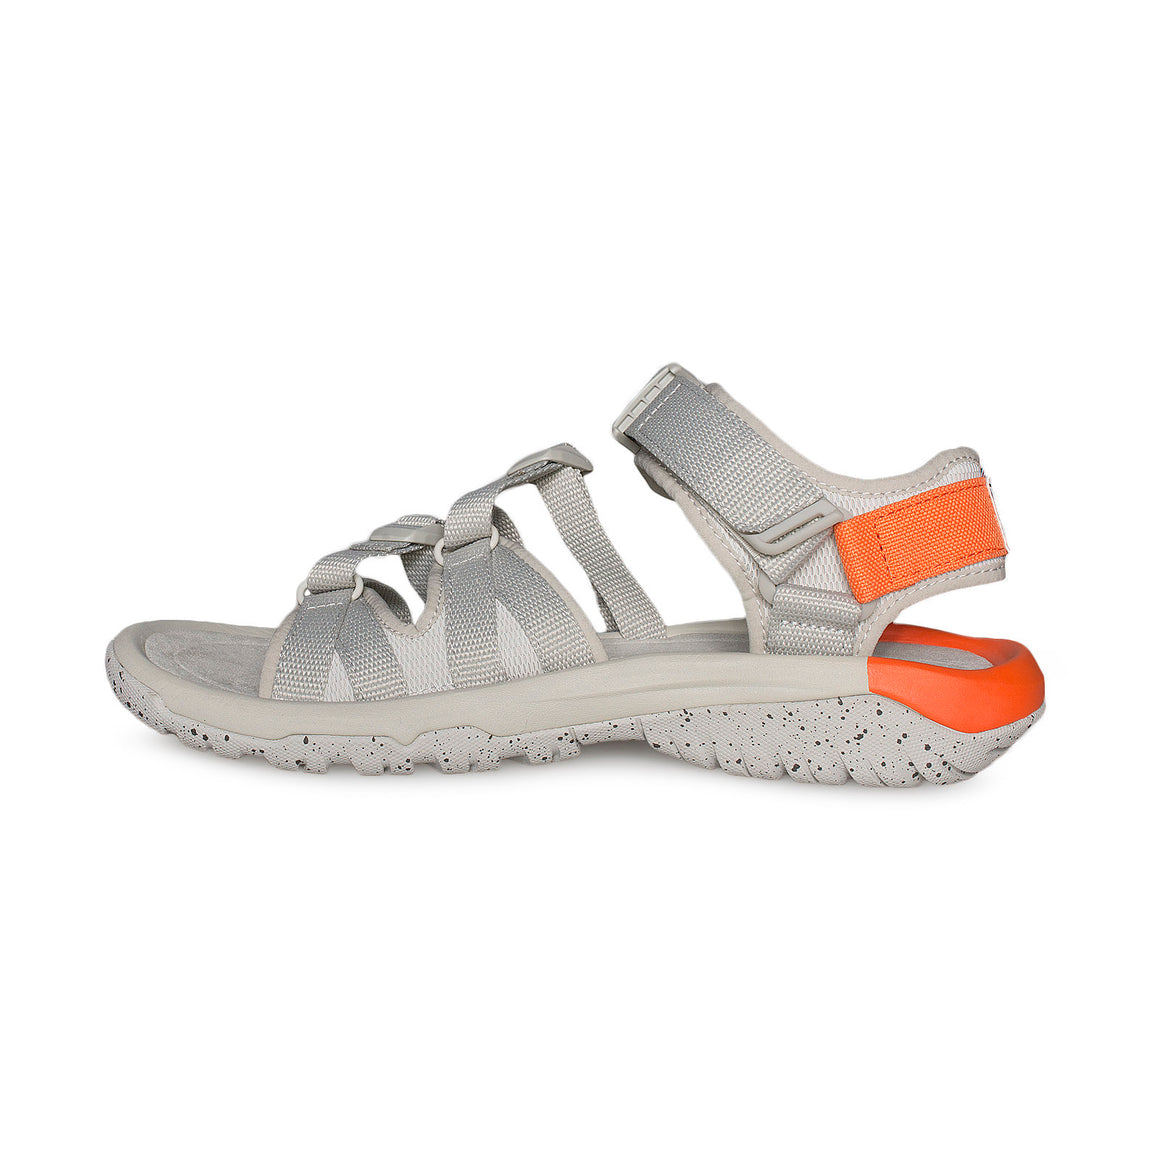 Teva Hurricane XLT 2 ALP HERSCHEL Grey / Orange Sandals - Men's